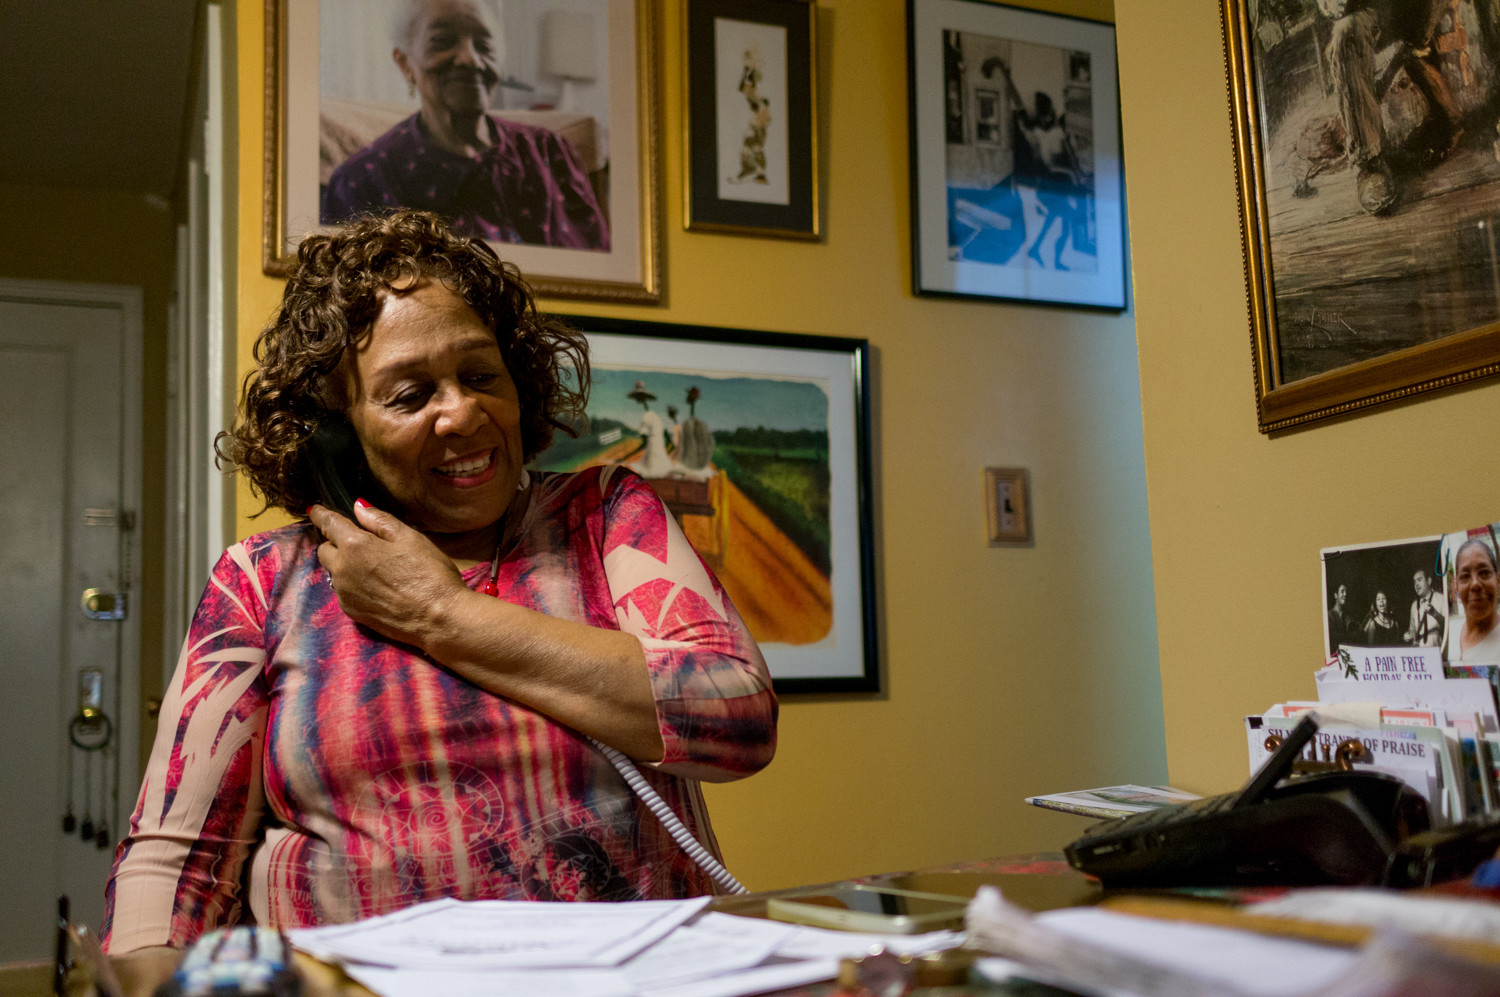 Delores Dixon takes a phone call in her home. A folk singer who practices tai chi and line dancing — and has been a Riverdale resident for the last 41 years — Dixon deals with 'what some would call 'vertigo,'' she said, a condition of frequent dizziness and headaches, and hopes the New York Health Act won't make the health care process more confusing.